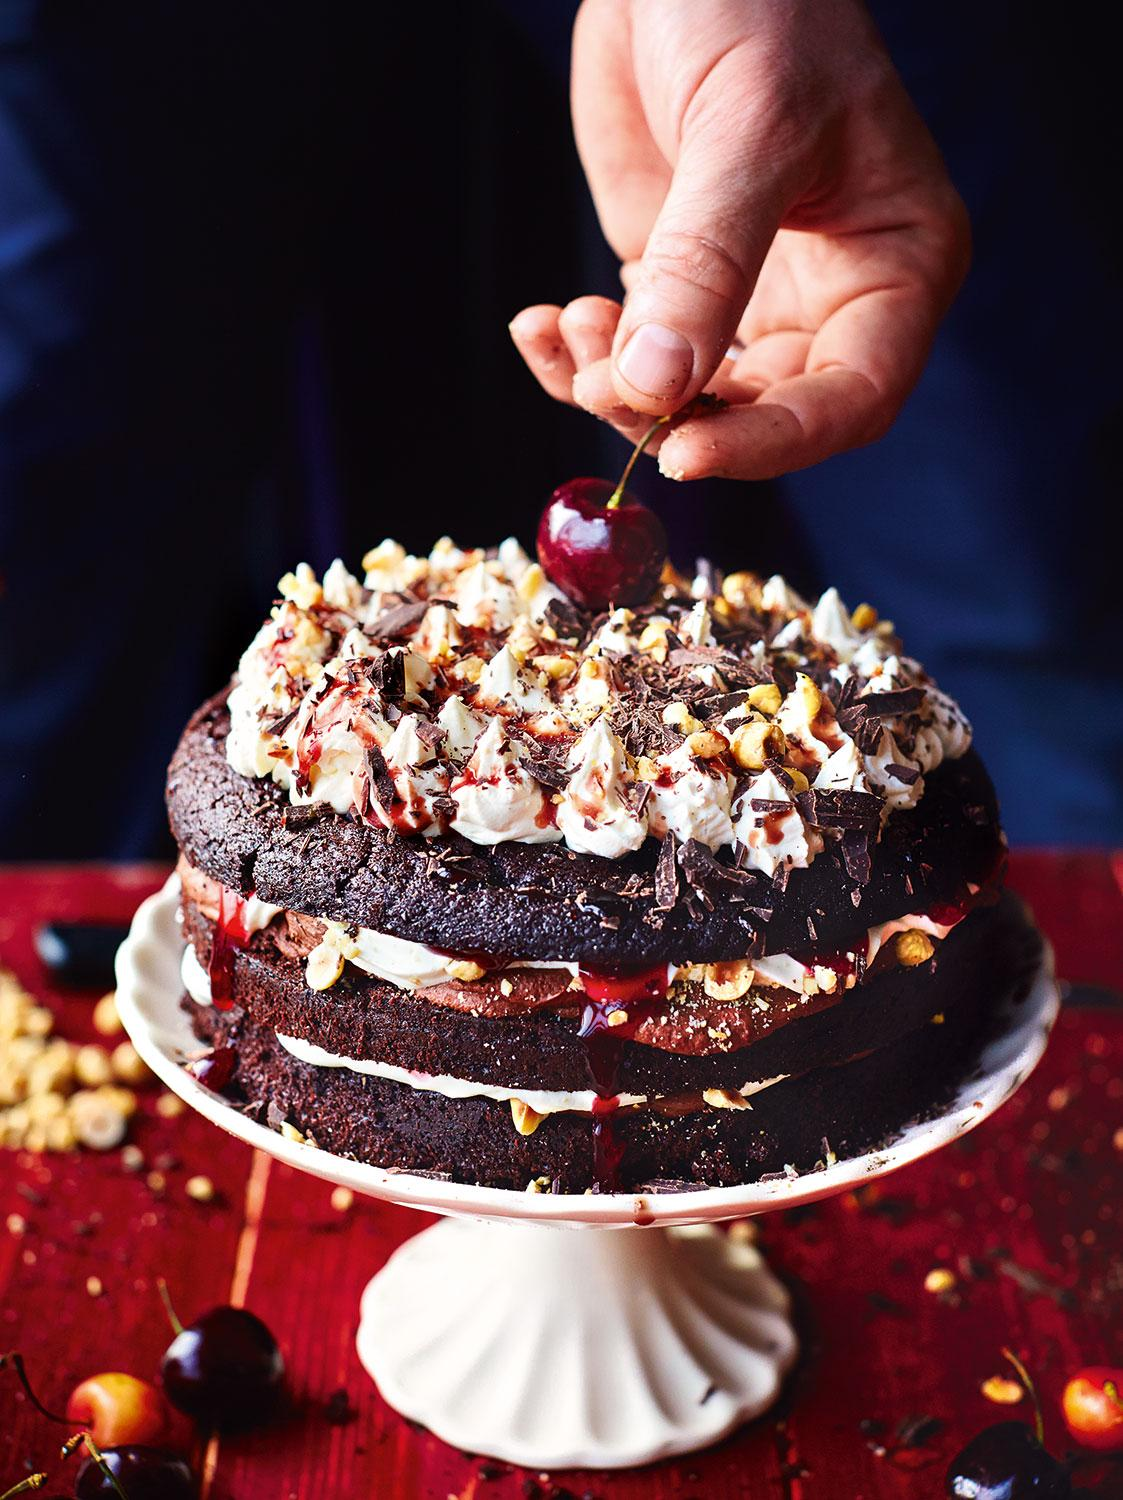 #Recipeoftheday Beautiful black forest gateau. Super special & PERFECT for #Christmas http://t.co/Eh8WhI8TB4 http://t.co/jyMDPrESPh